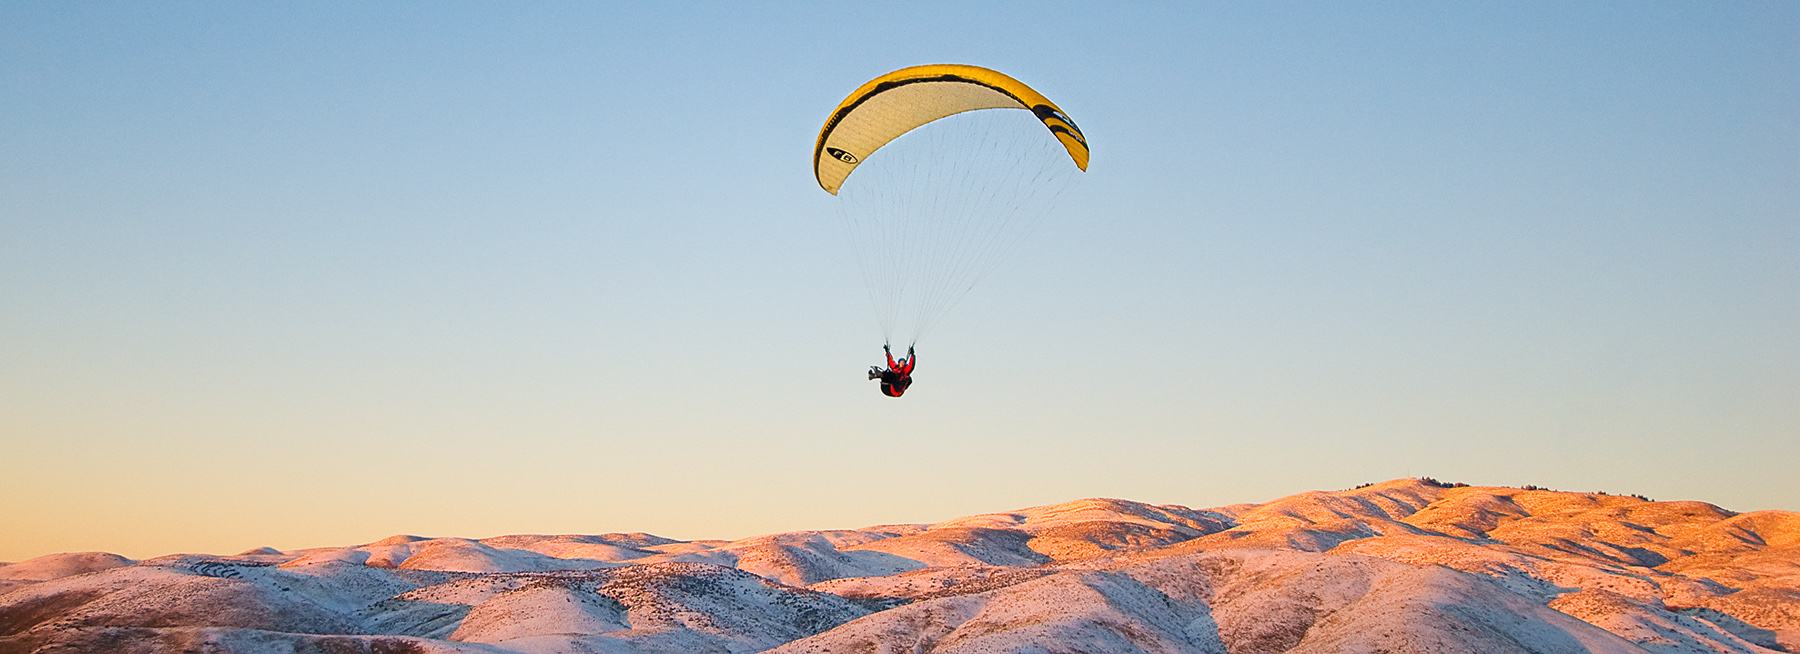 Paragliding_Idaho_photography.jpg